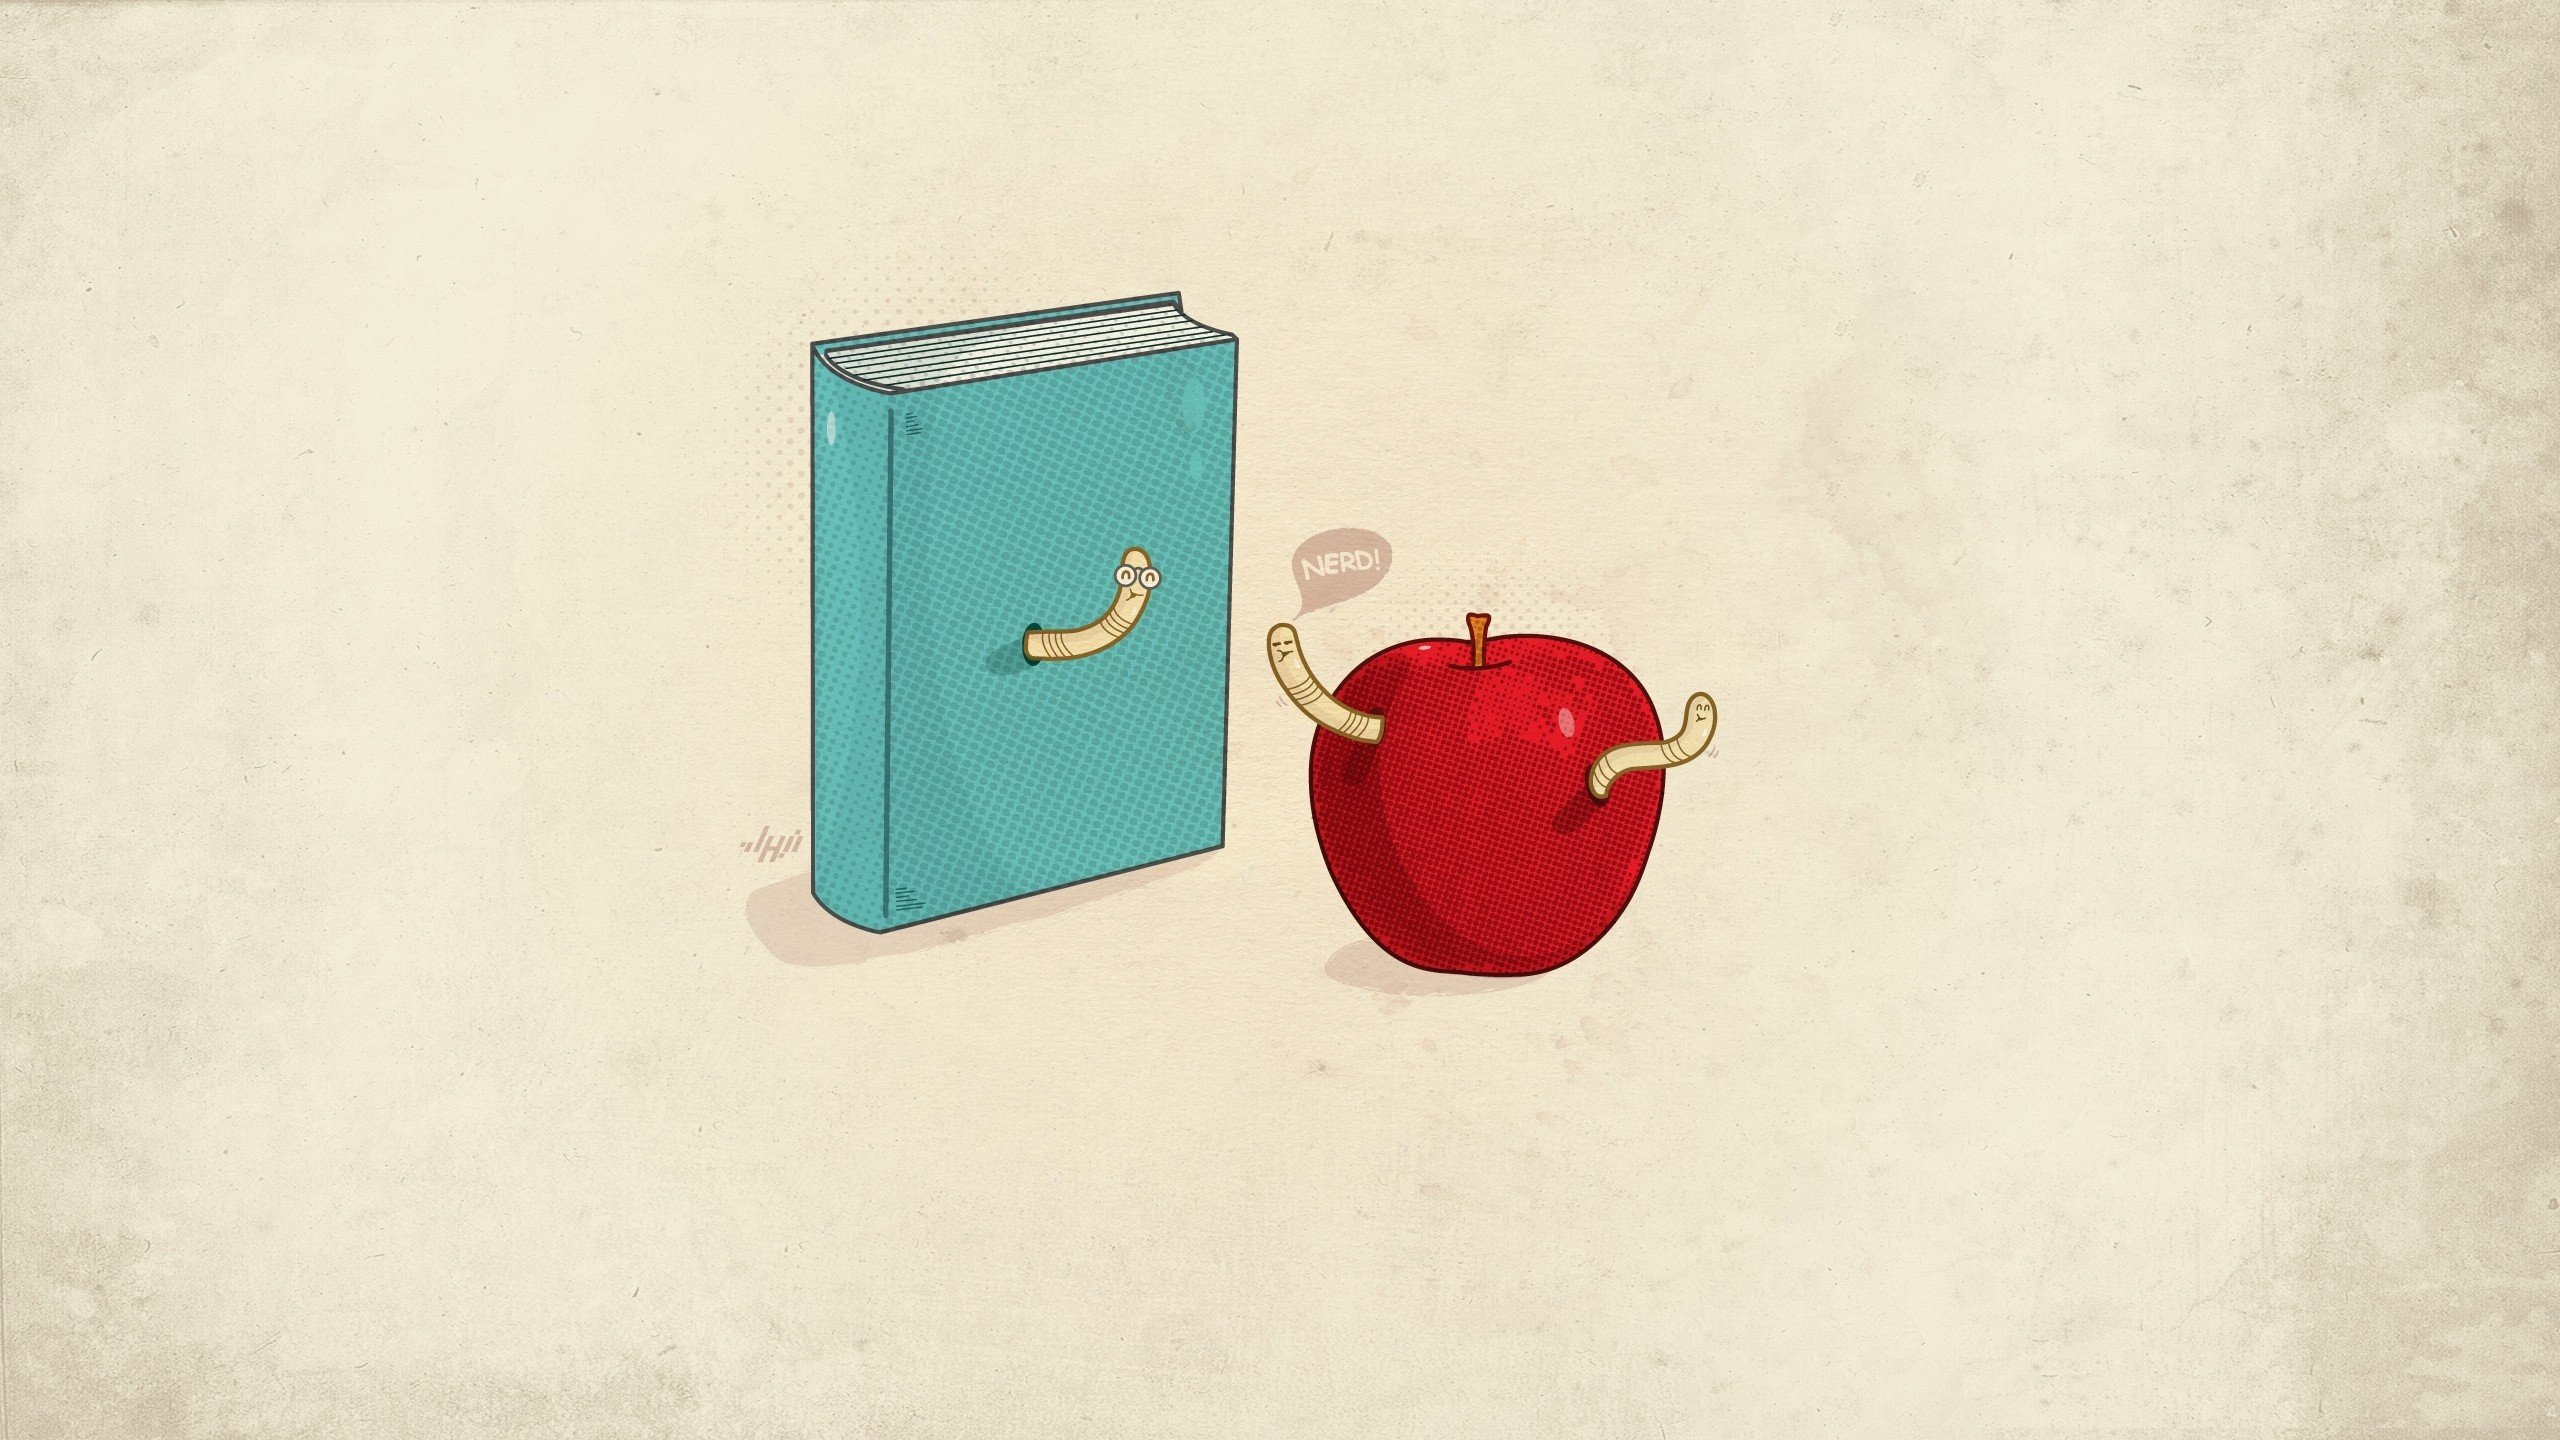 minimalistic nerd funny books apples simple background worms